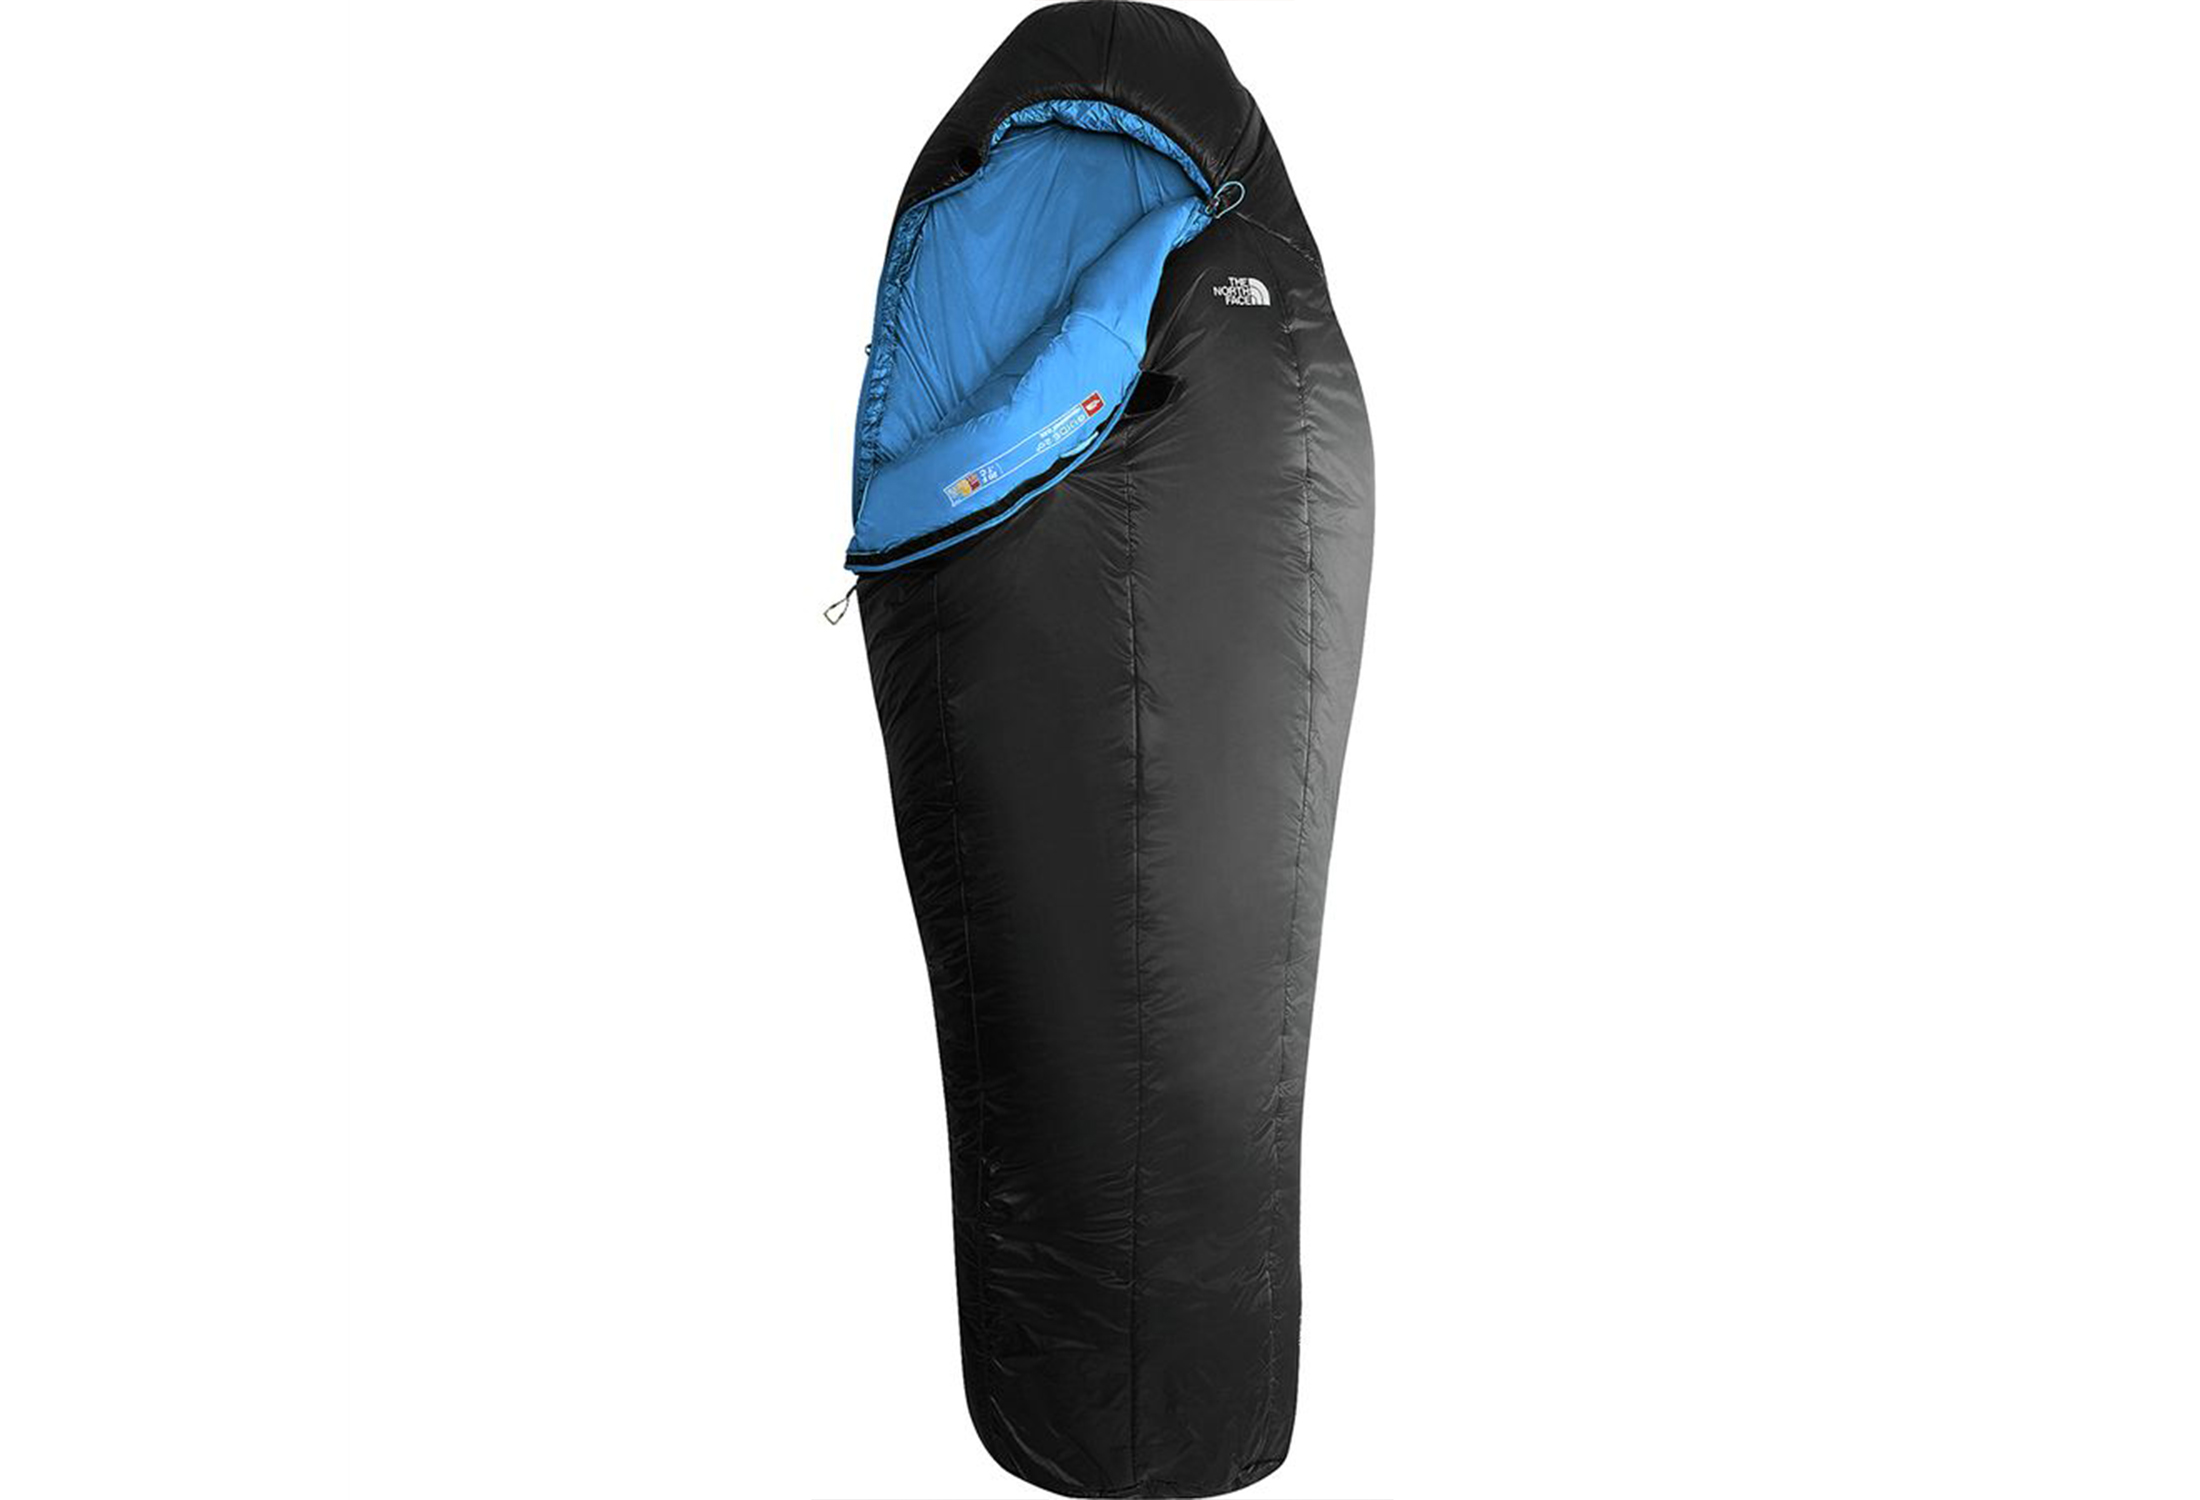 The North Face Guide 20 Sleeping Bag